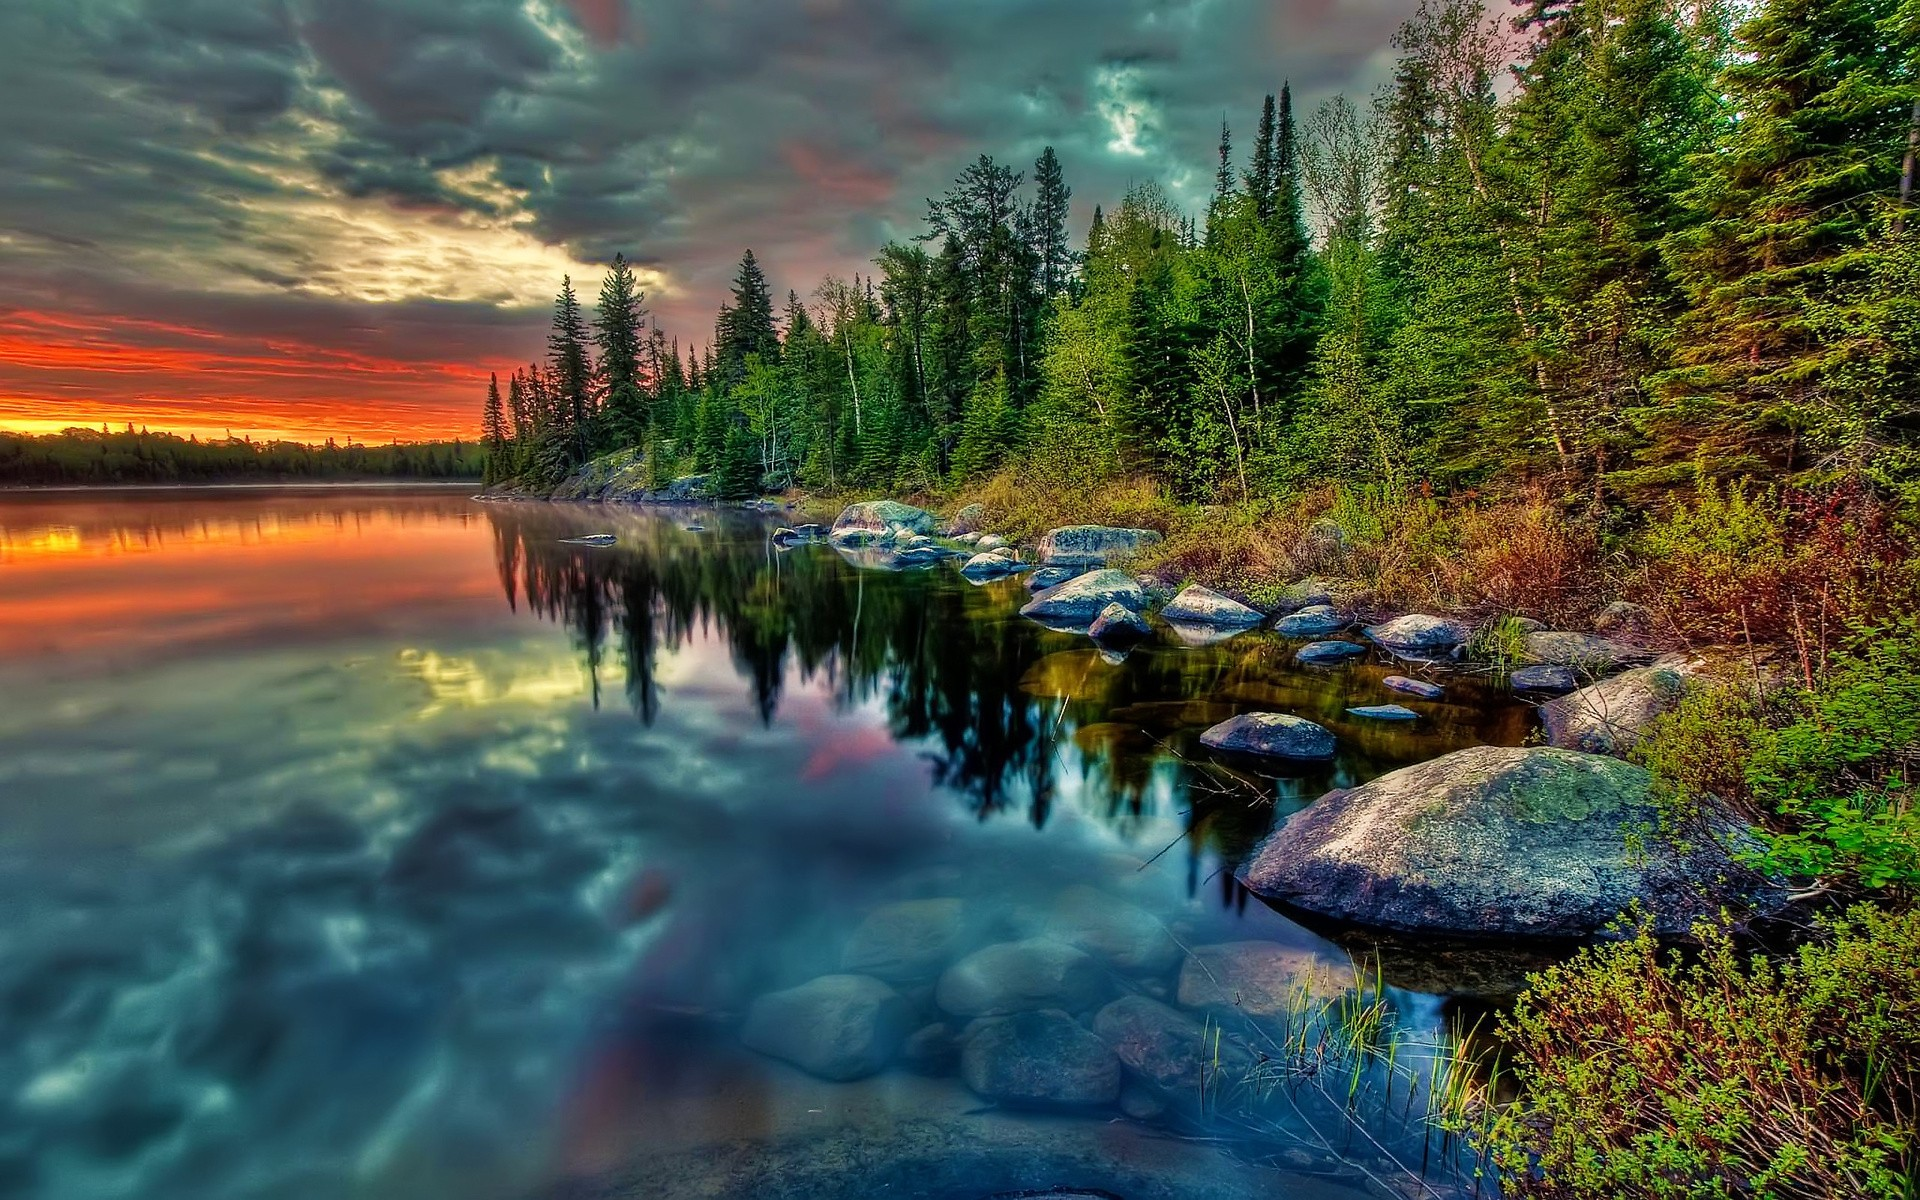 Nature Wallpaper Live